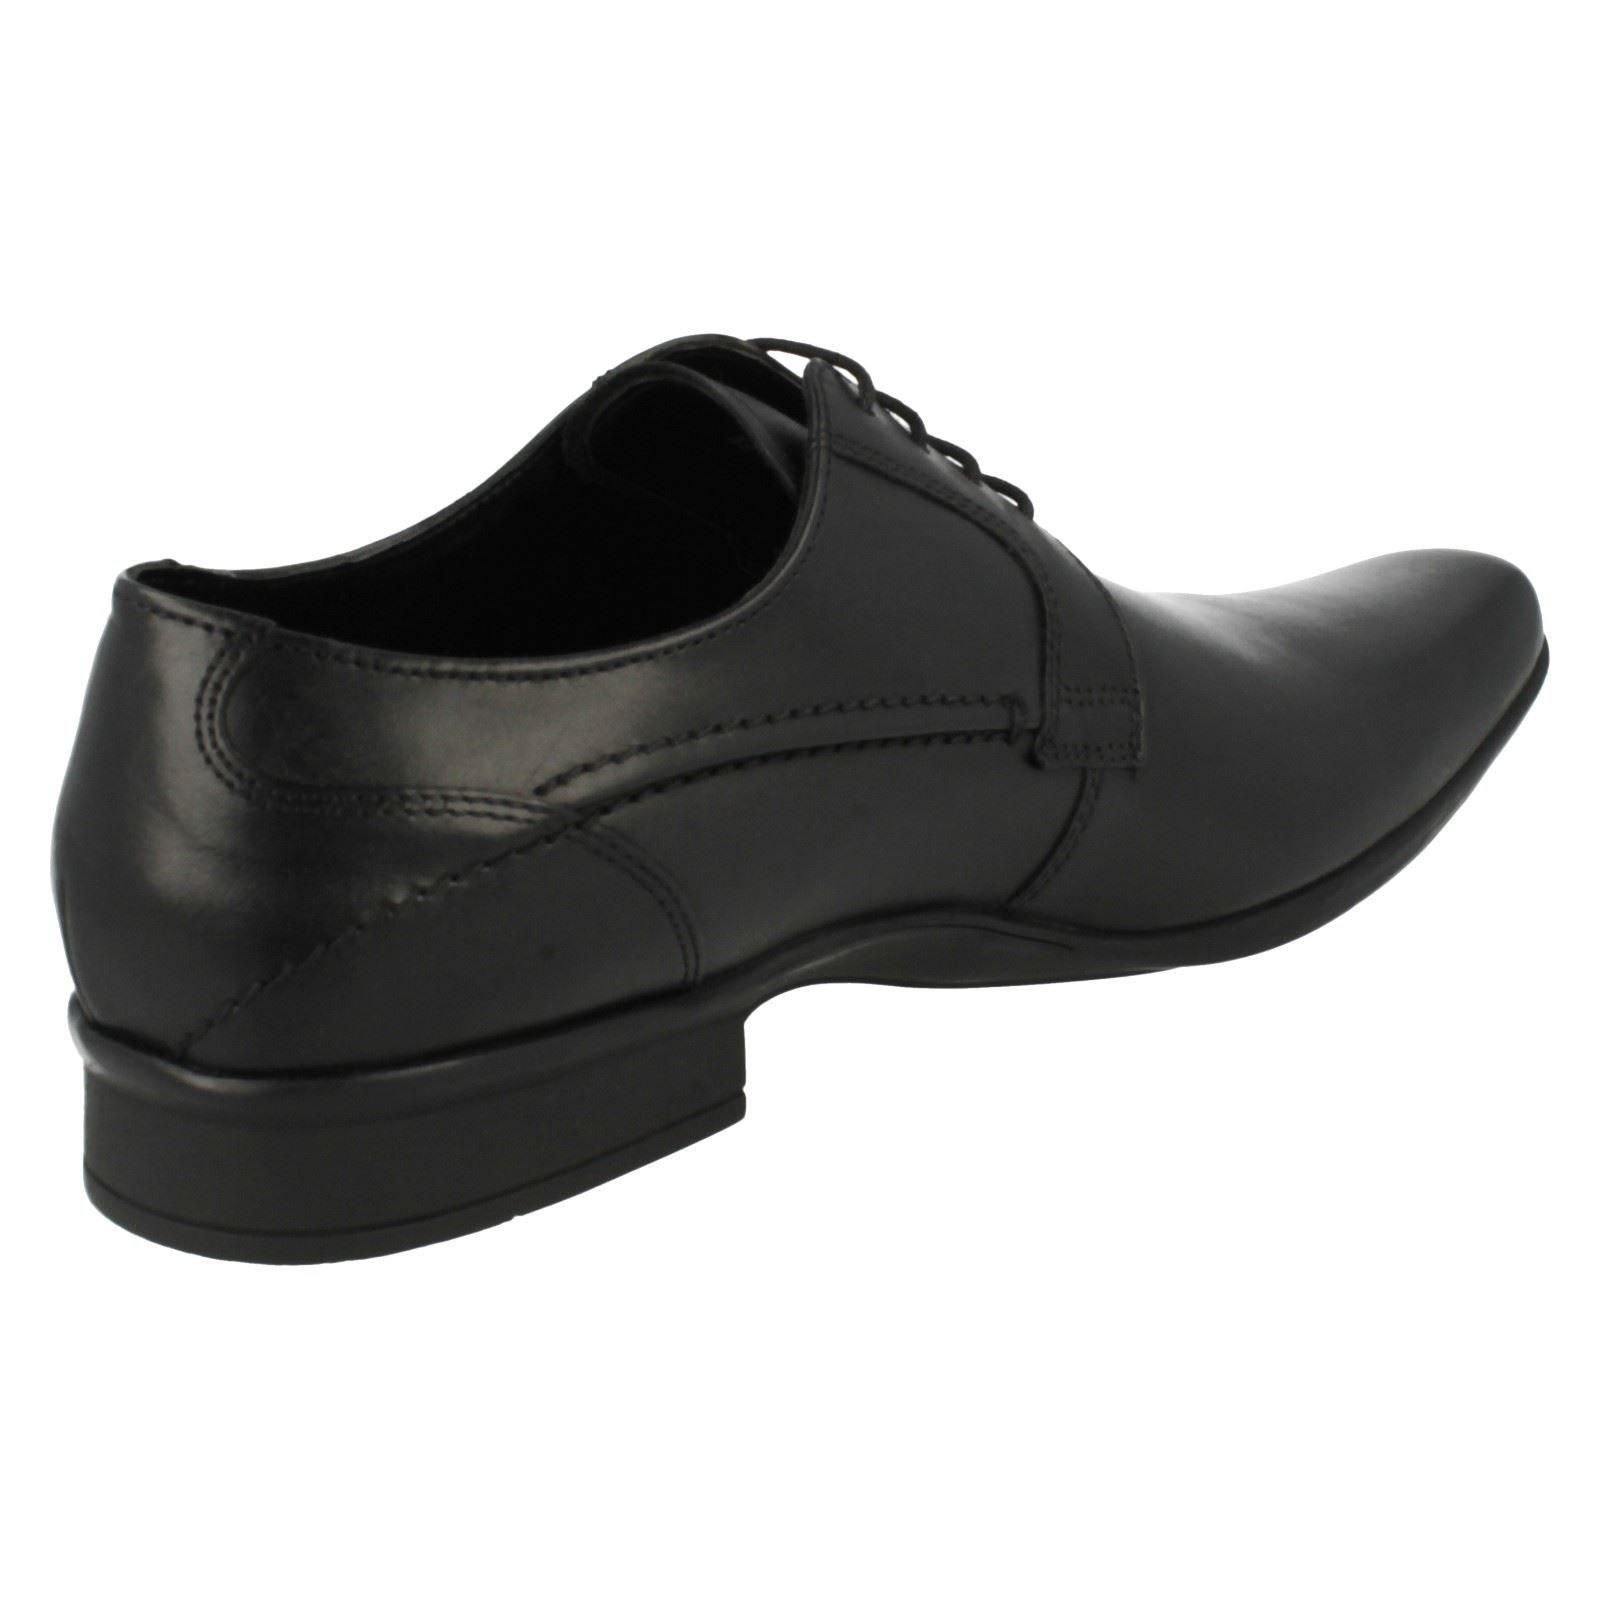 Mens-Clarks-Formal-Lace-Up-Shoes-Ascar-Walk thumbnail 6